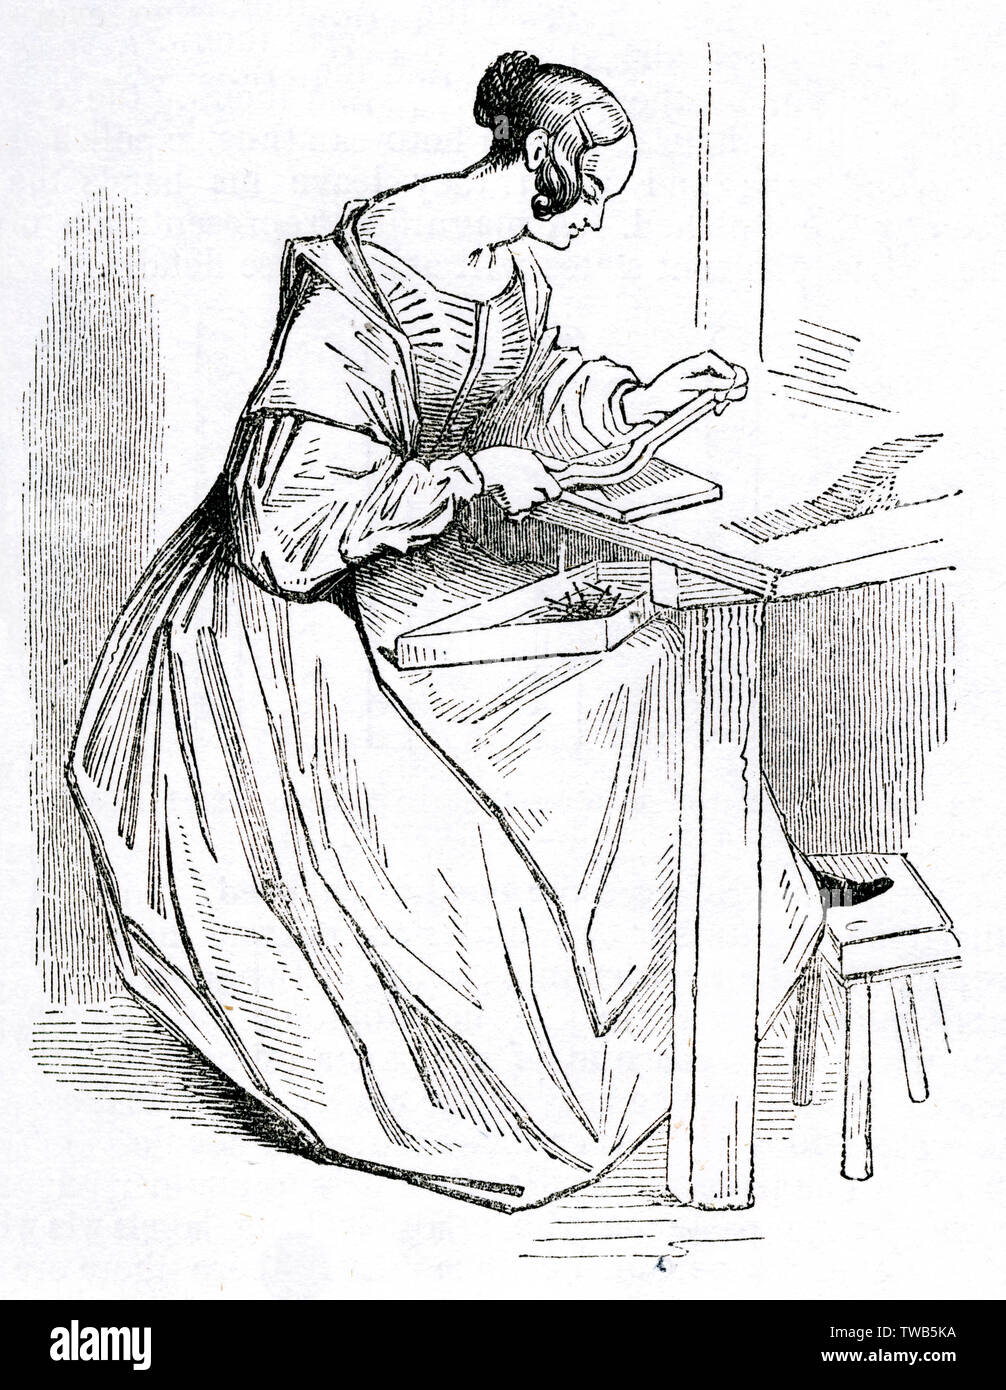 Scene at the British Needle Mills, Redditch, Worcestershire -- woman doing separating and straightening work with a steel bar towards the end of the manufacturing process, and dropping the finished product into a tray on her lap.      Date: 1843 - Stock Image